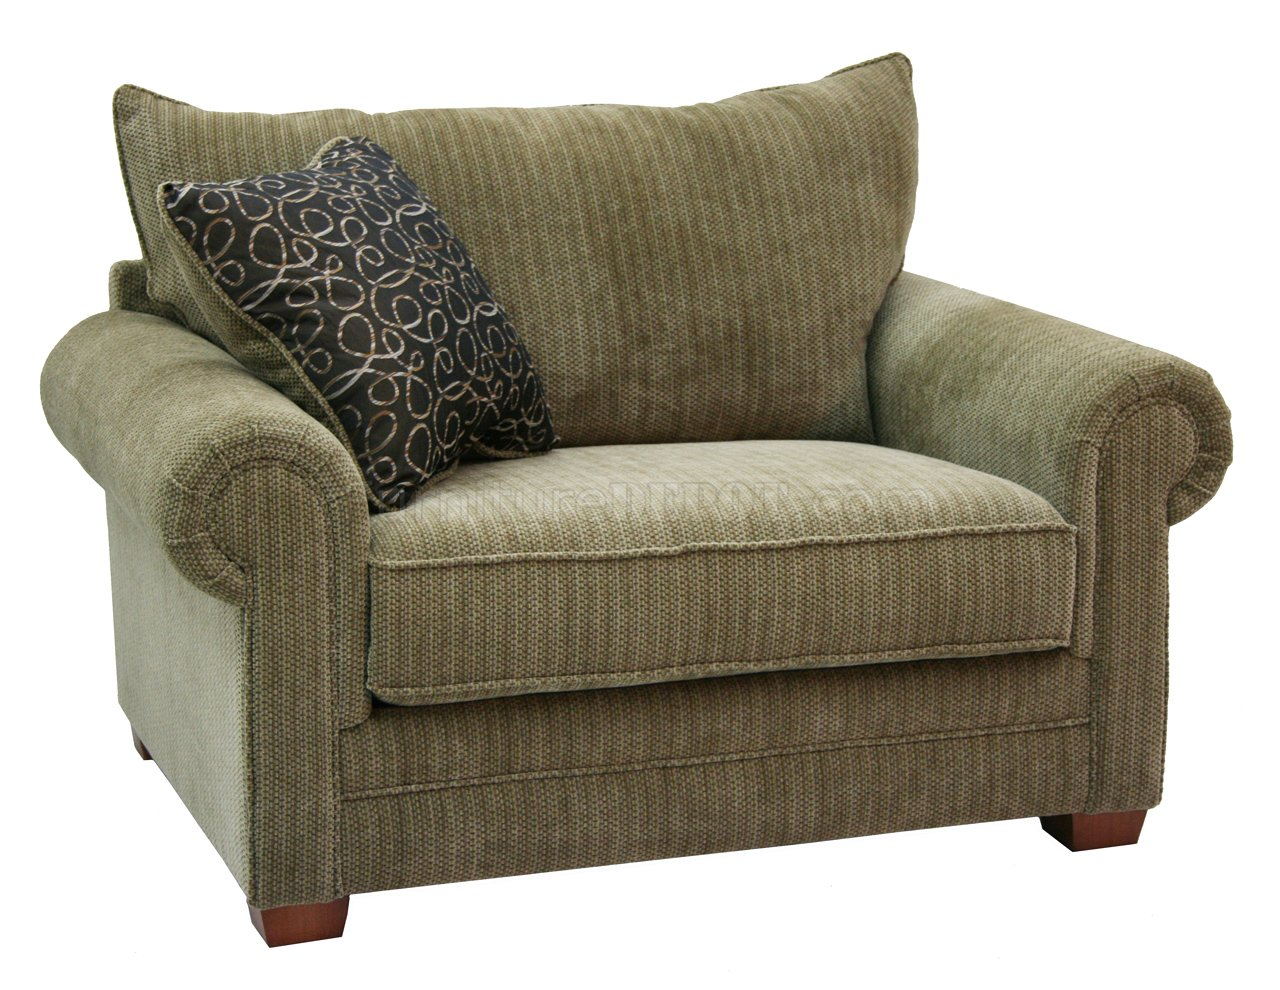 Multi tone chenille fabric modern sofa loveseat set w Fabric sofas and loveseats